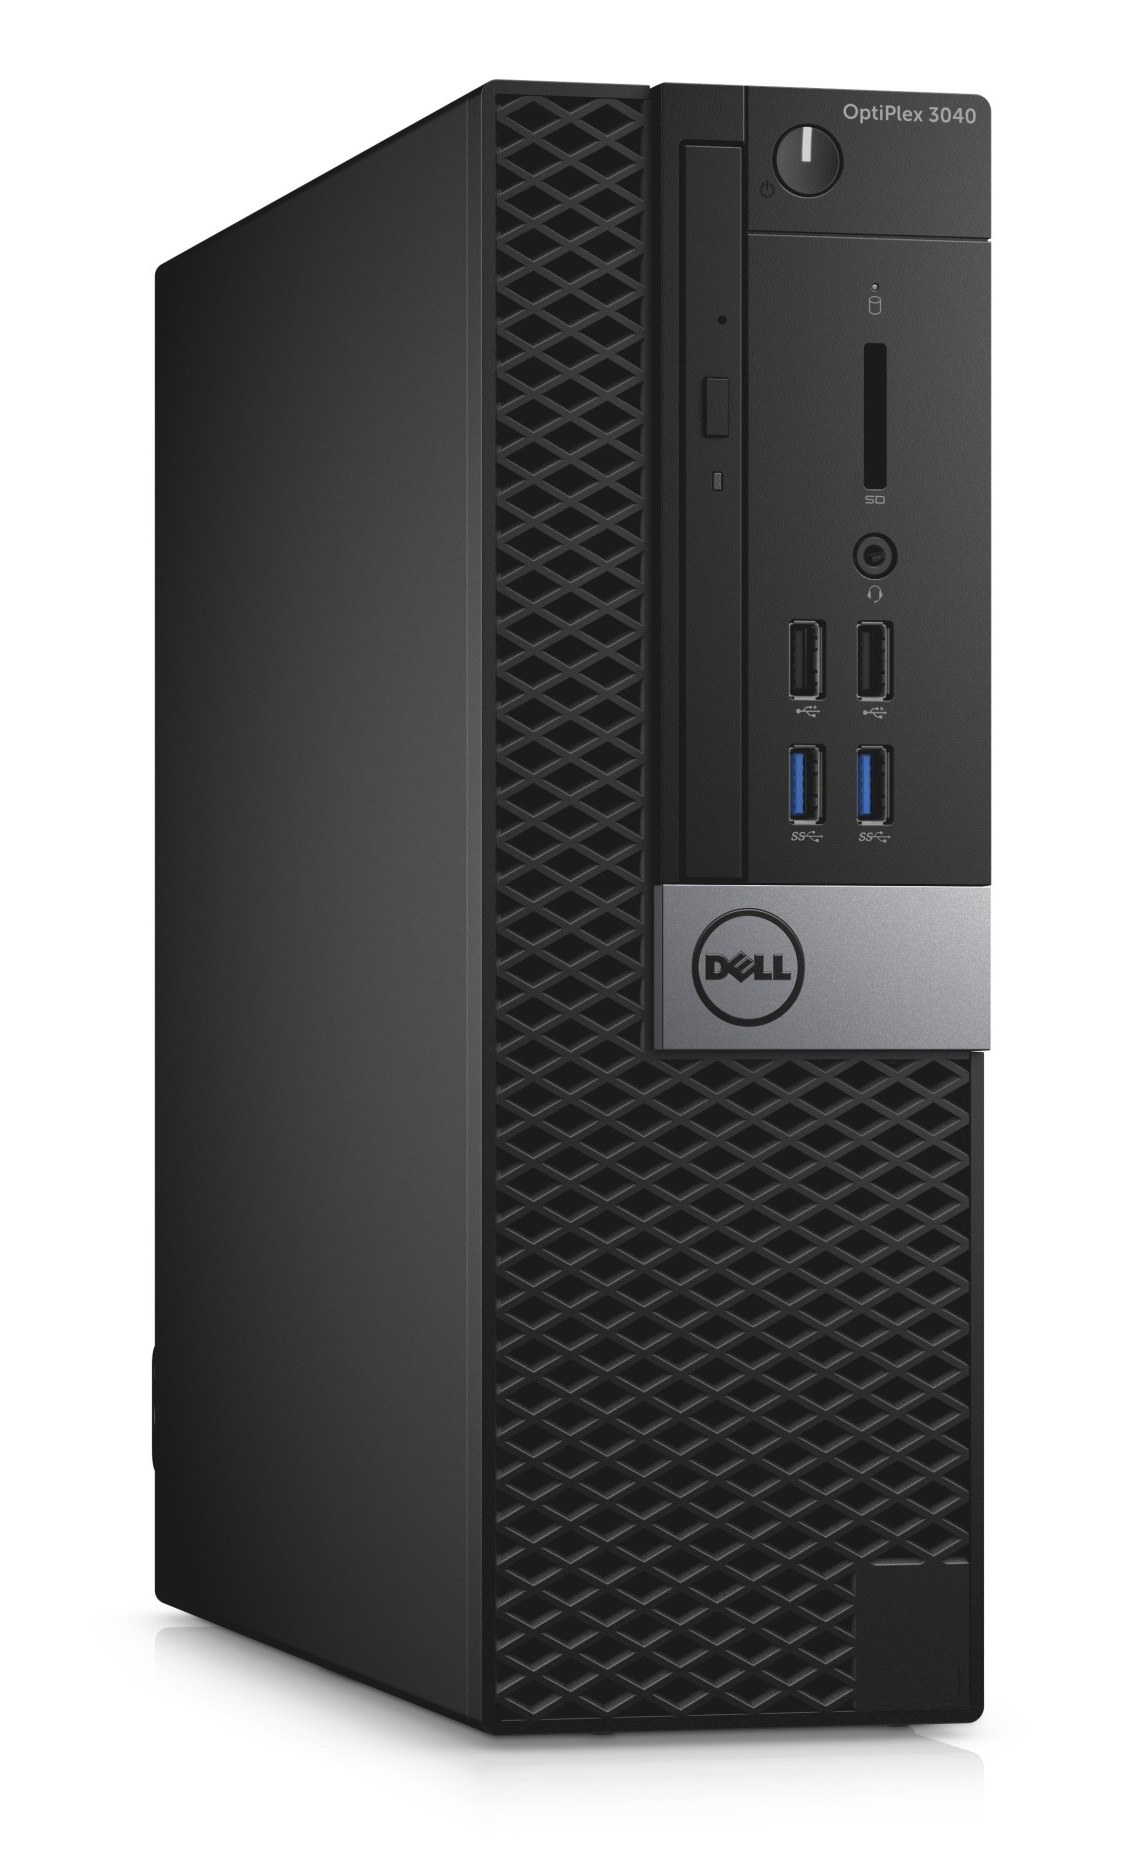 Dell Optiplex 3040S i5-6500/8GB/500GB/MCR/HDMI/DP/DVD-RW/W10P/3RNBD/Černý